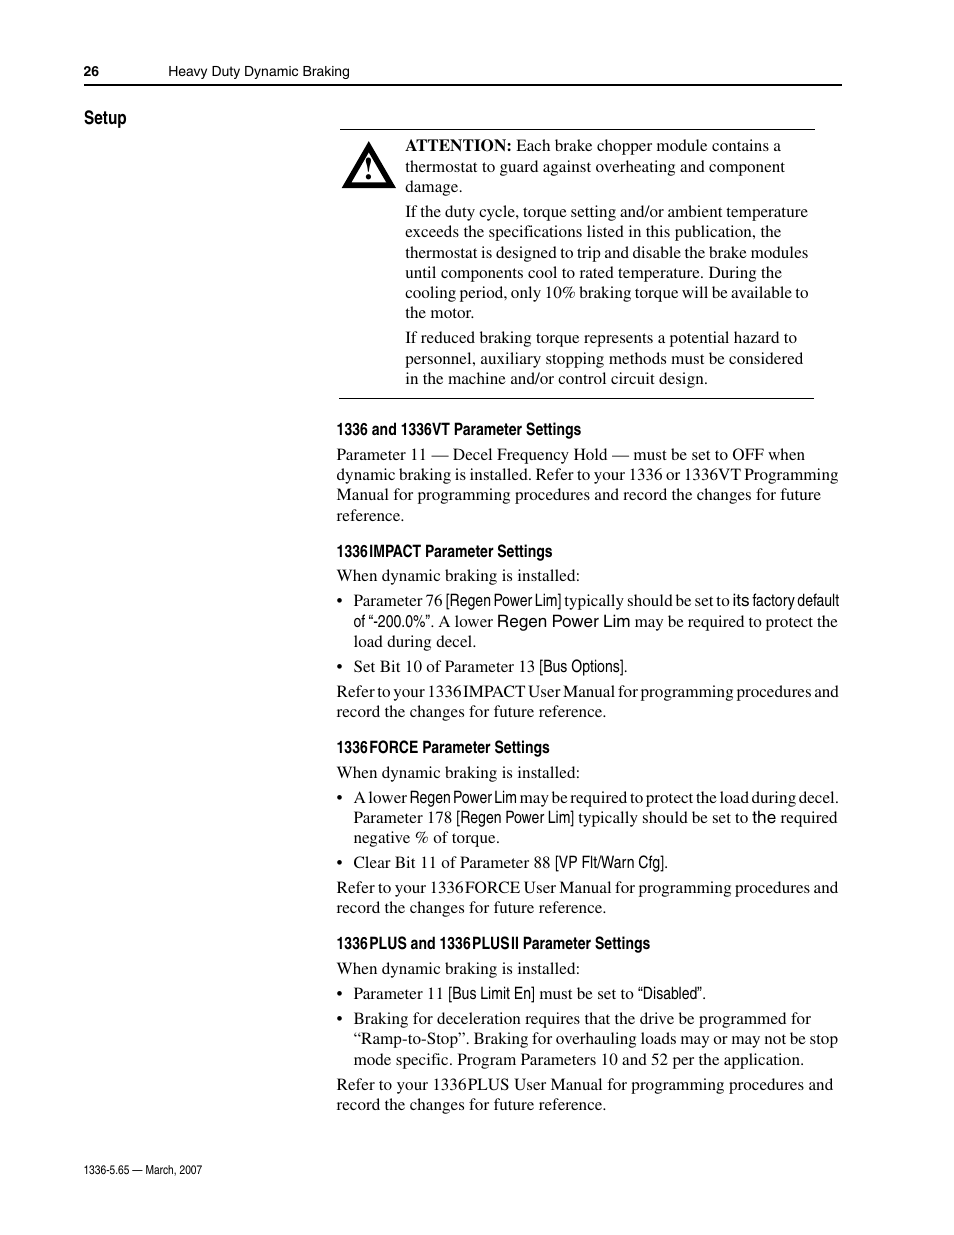 Setup | Rockwell Automation 1336_F_E_T_S SERIES A CHOPPER BRAKE MODULE User  Manual | Page 26 / 40